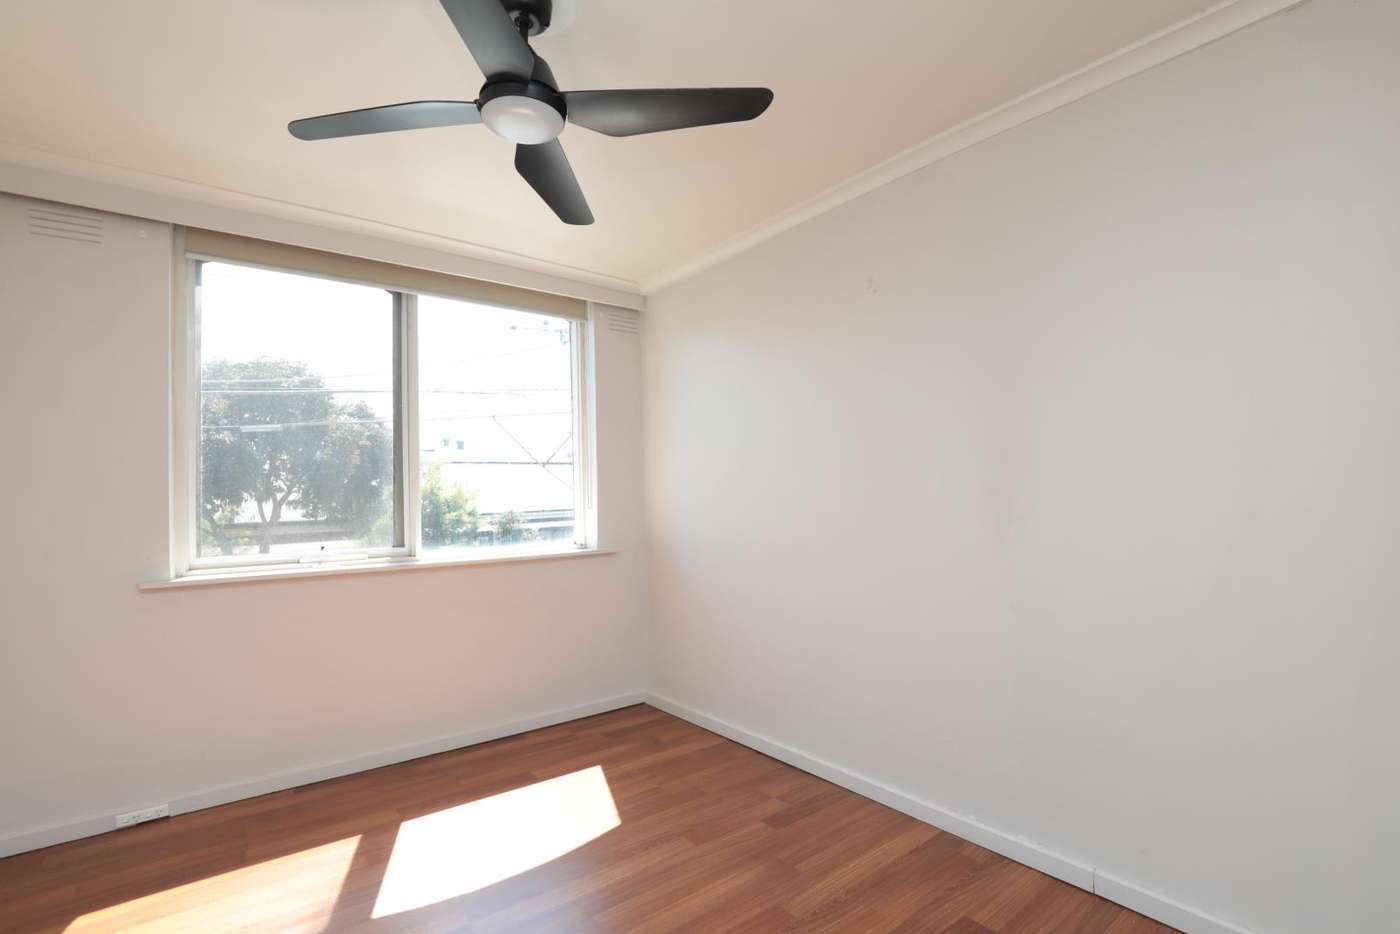 Fifth view of Homely apartment listing, 3/46-50 Baker Street, Richmond VIC 3121